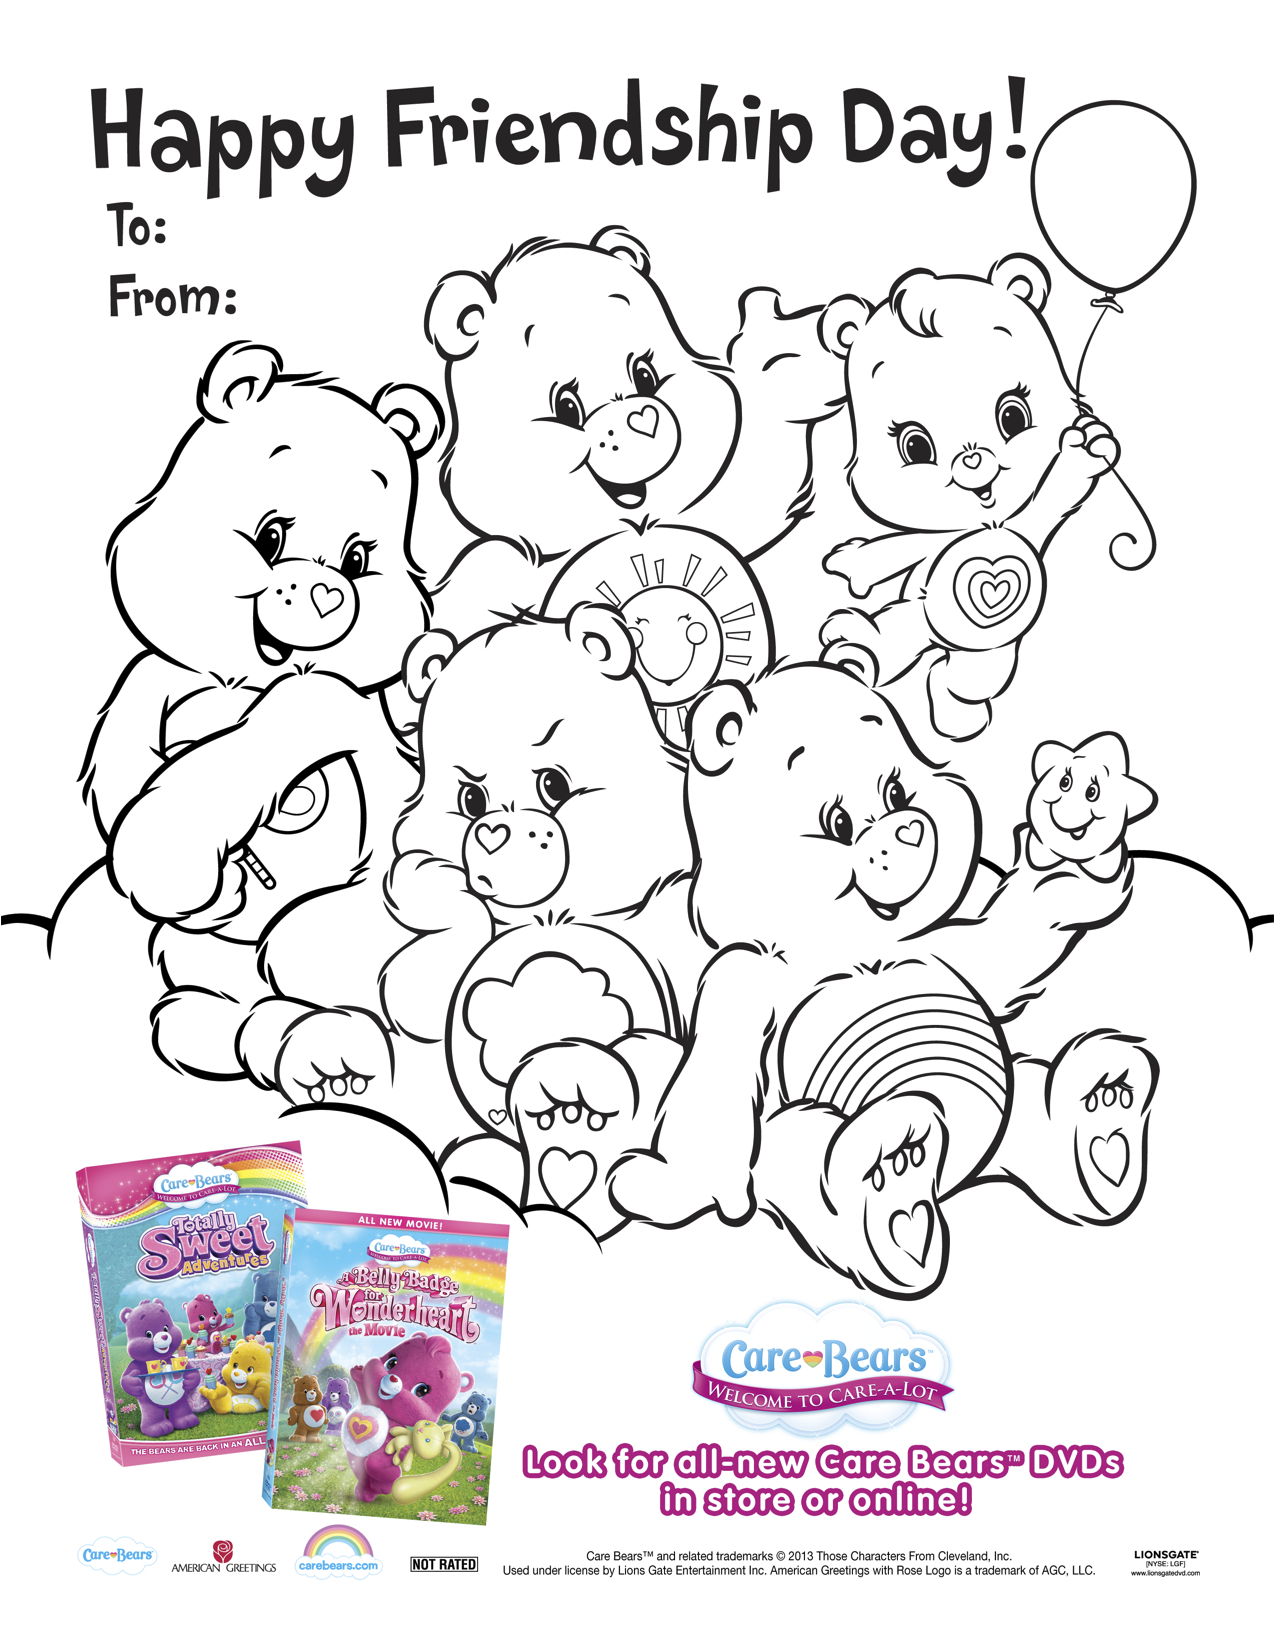 Care bears printable friendship day coloring page mama likes this